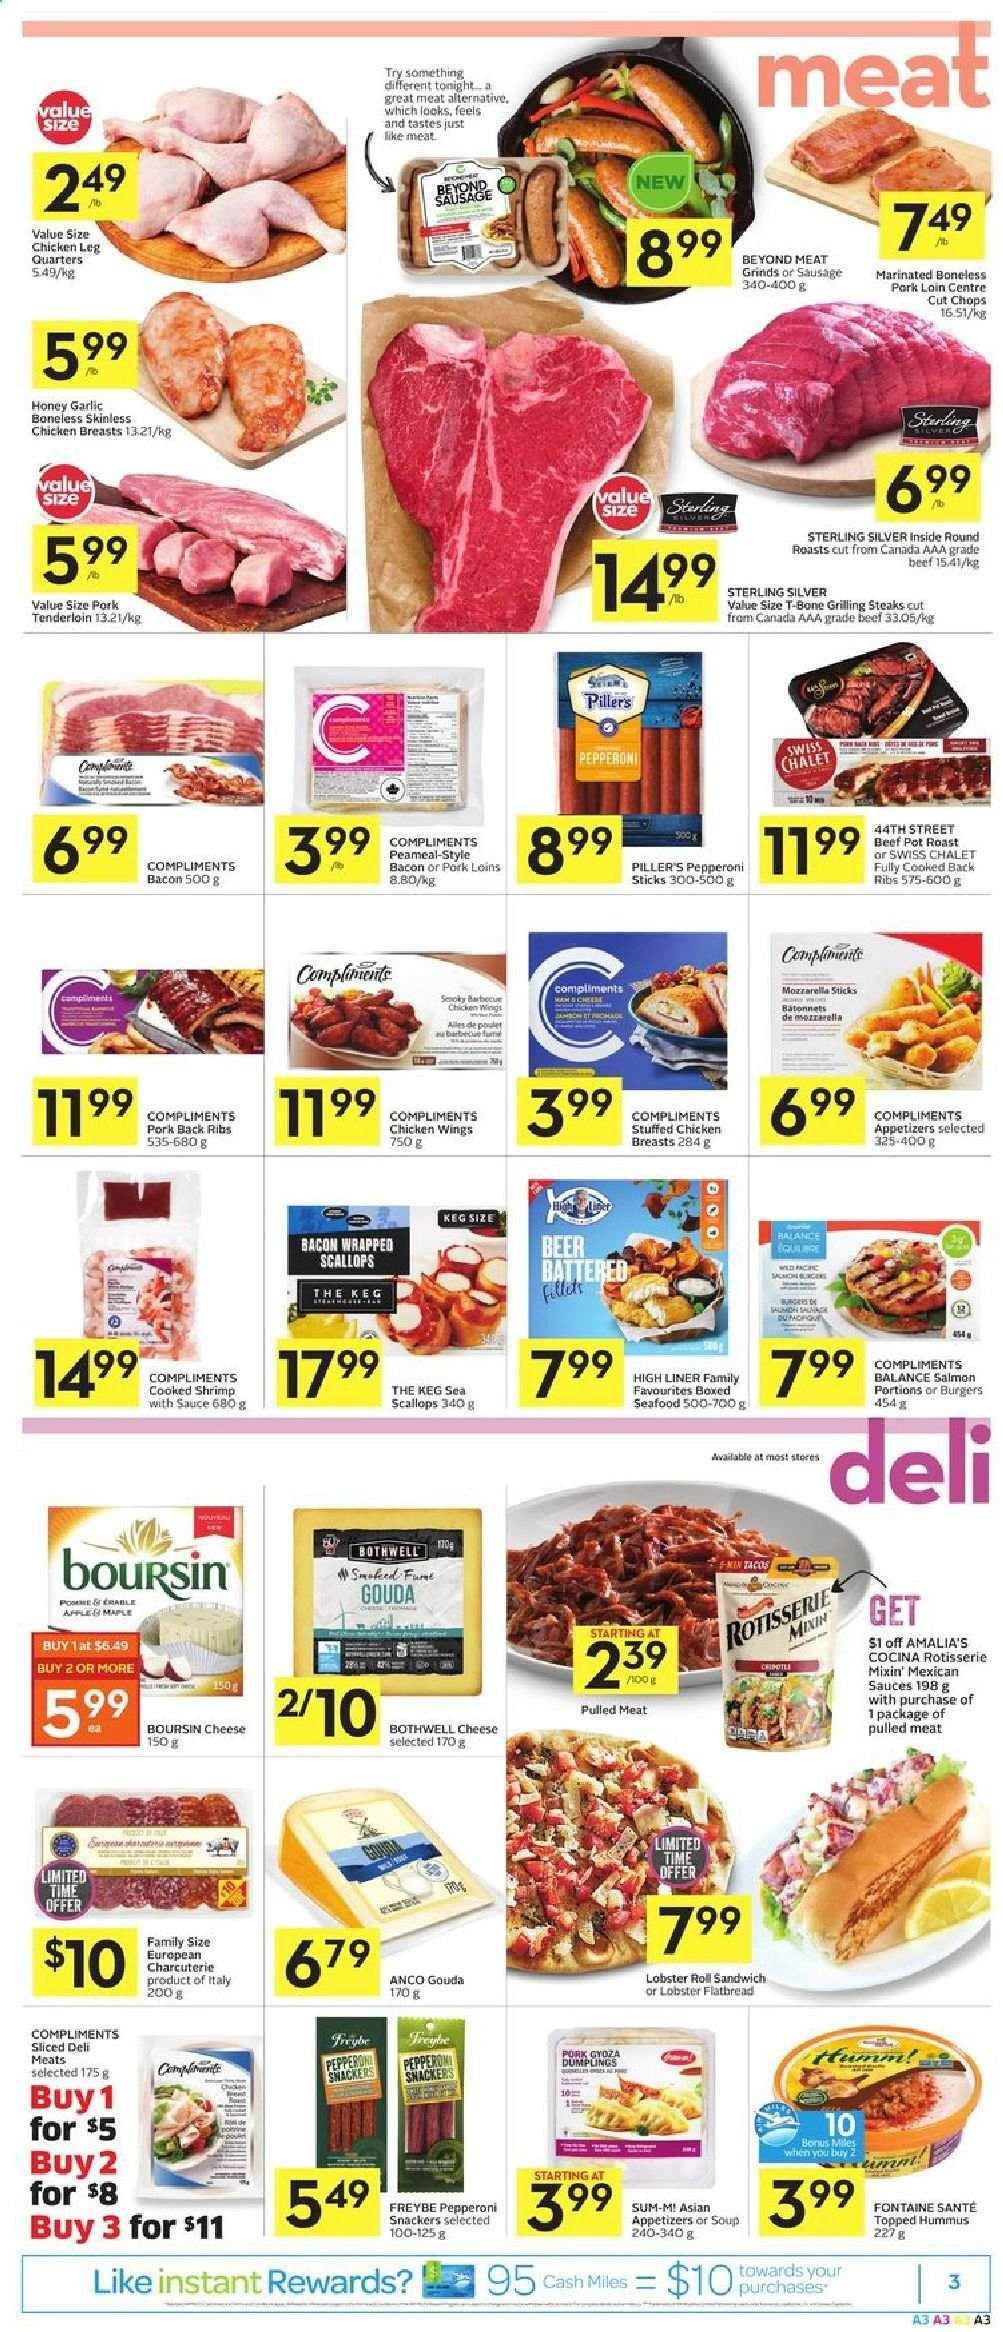 Foodland Flyer  - June 25, 2020 - July 01, 2020. Page 3.